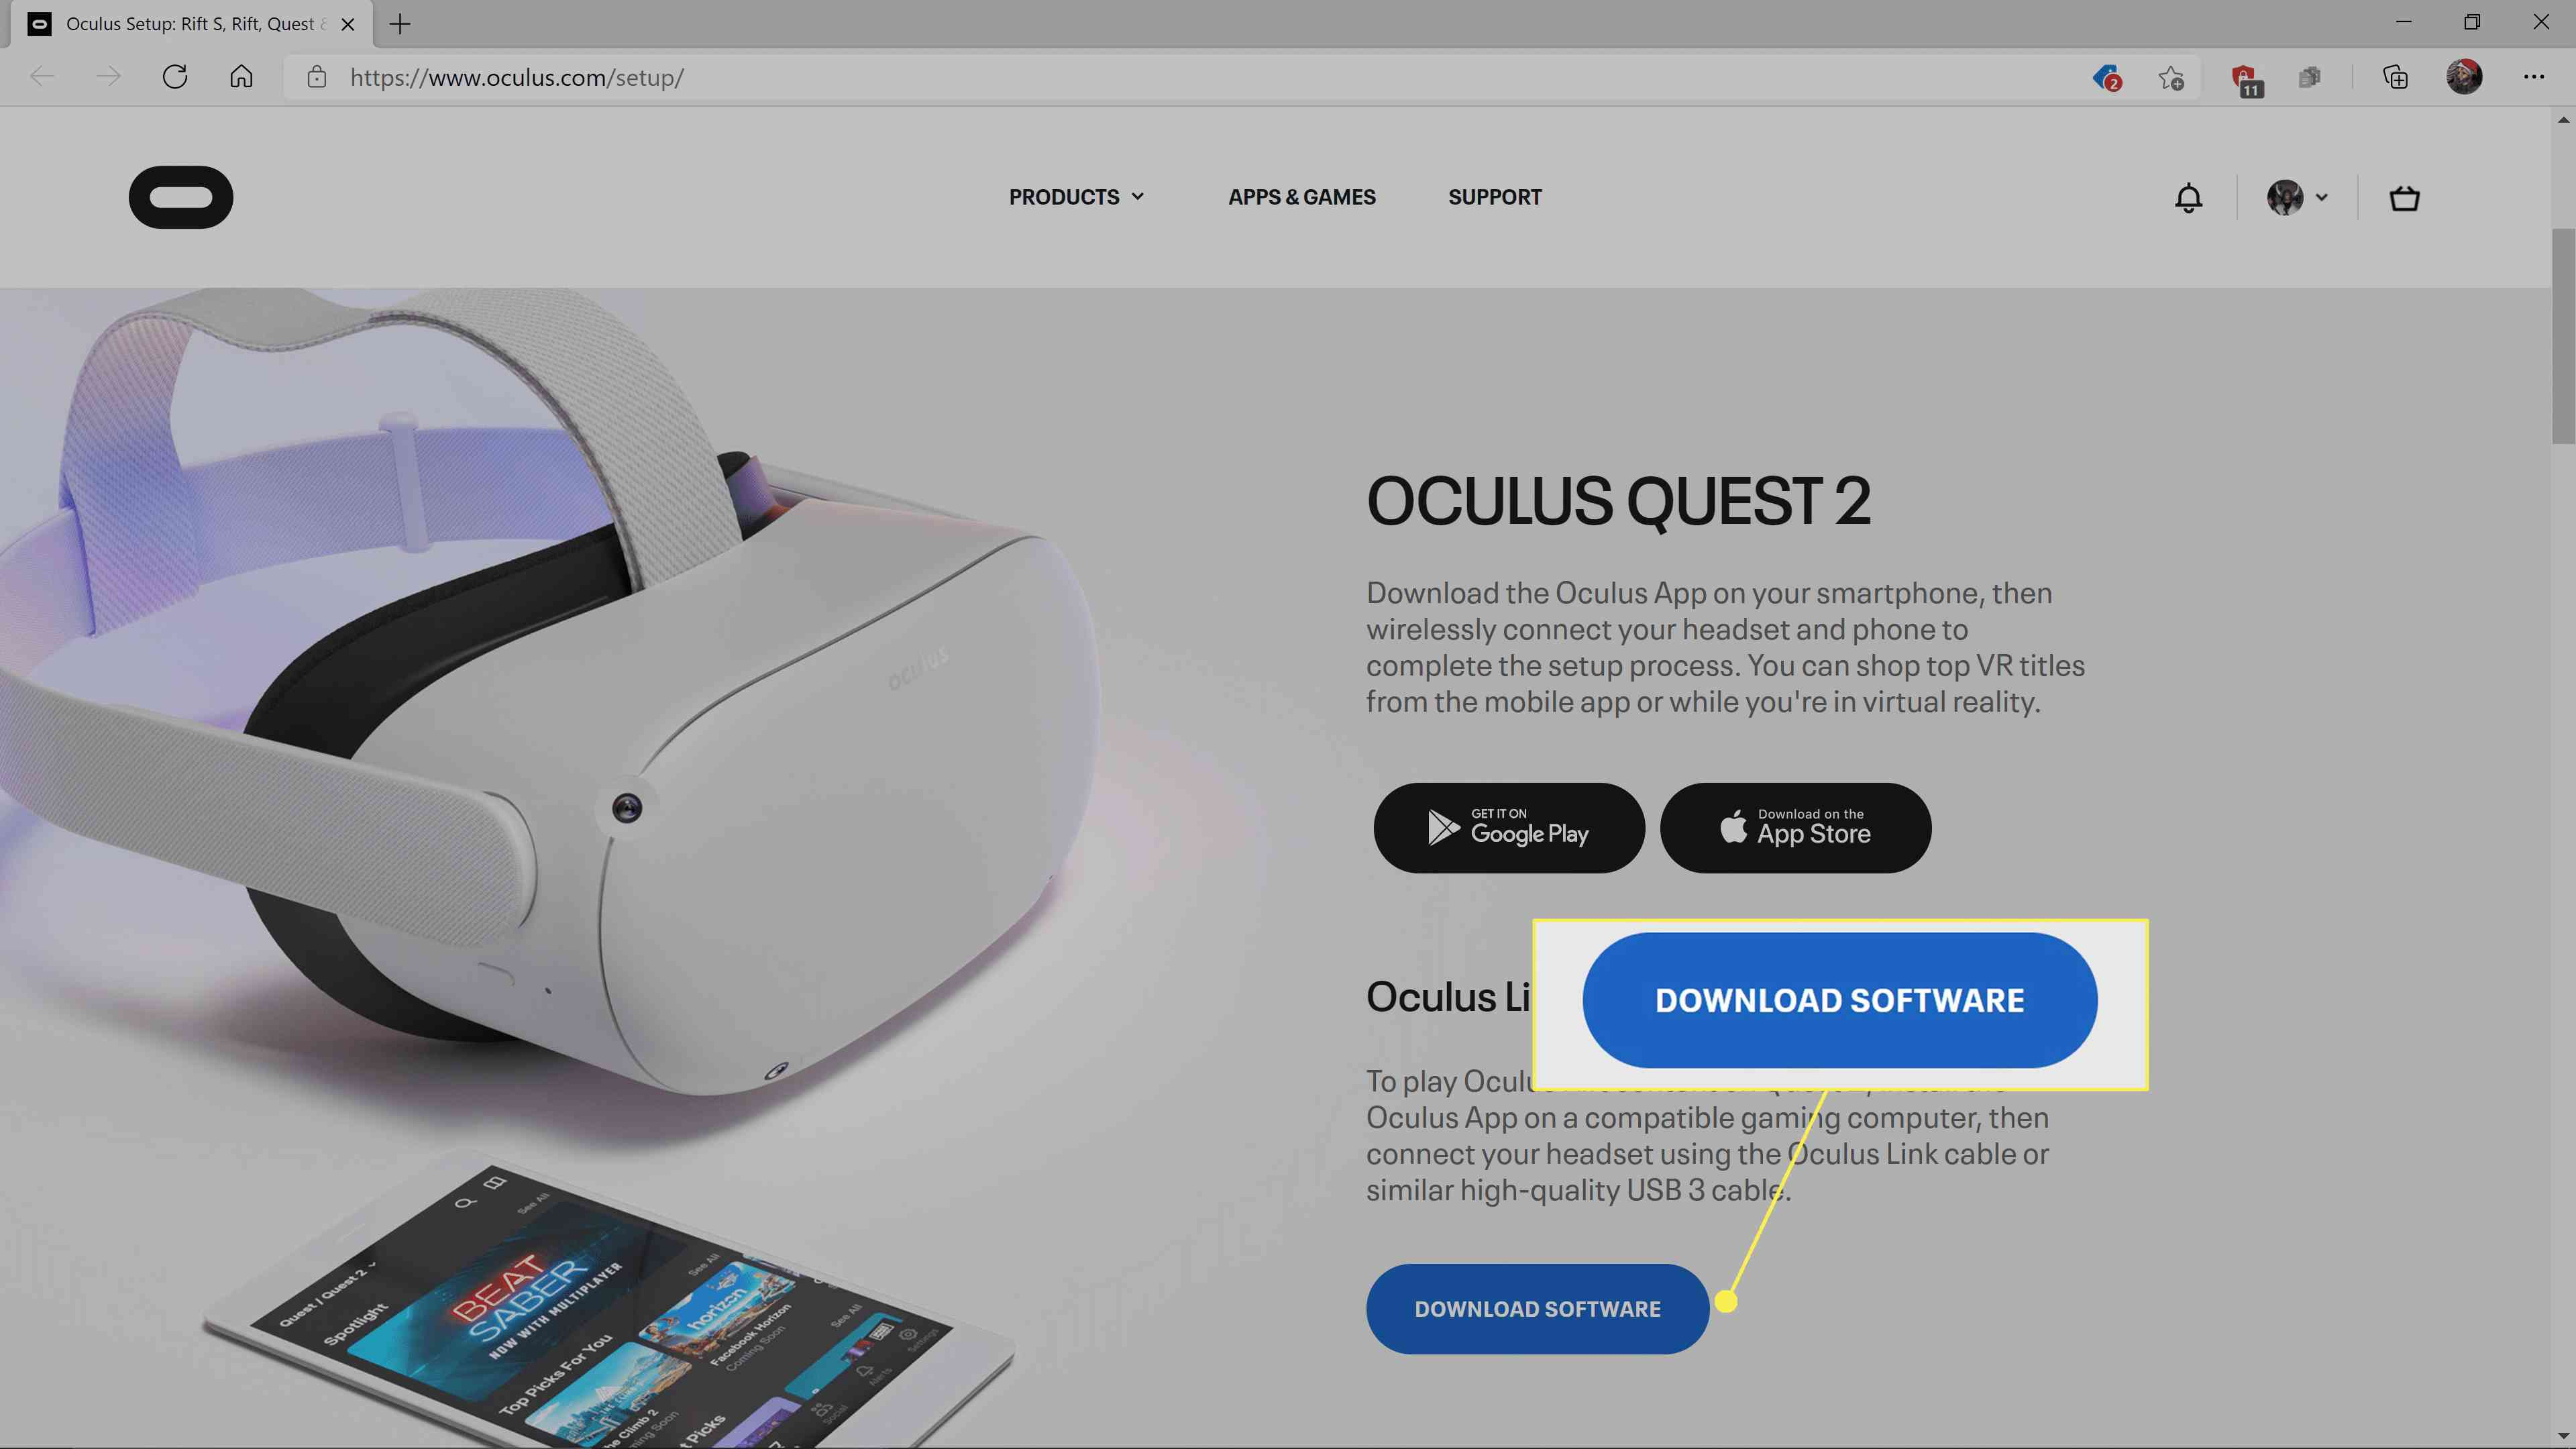 The Oculus Quest app download site with Download Software highlighted